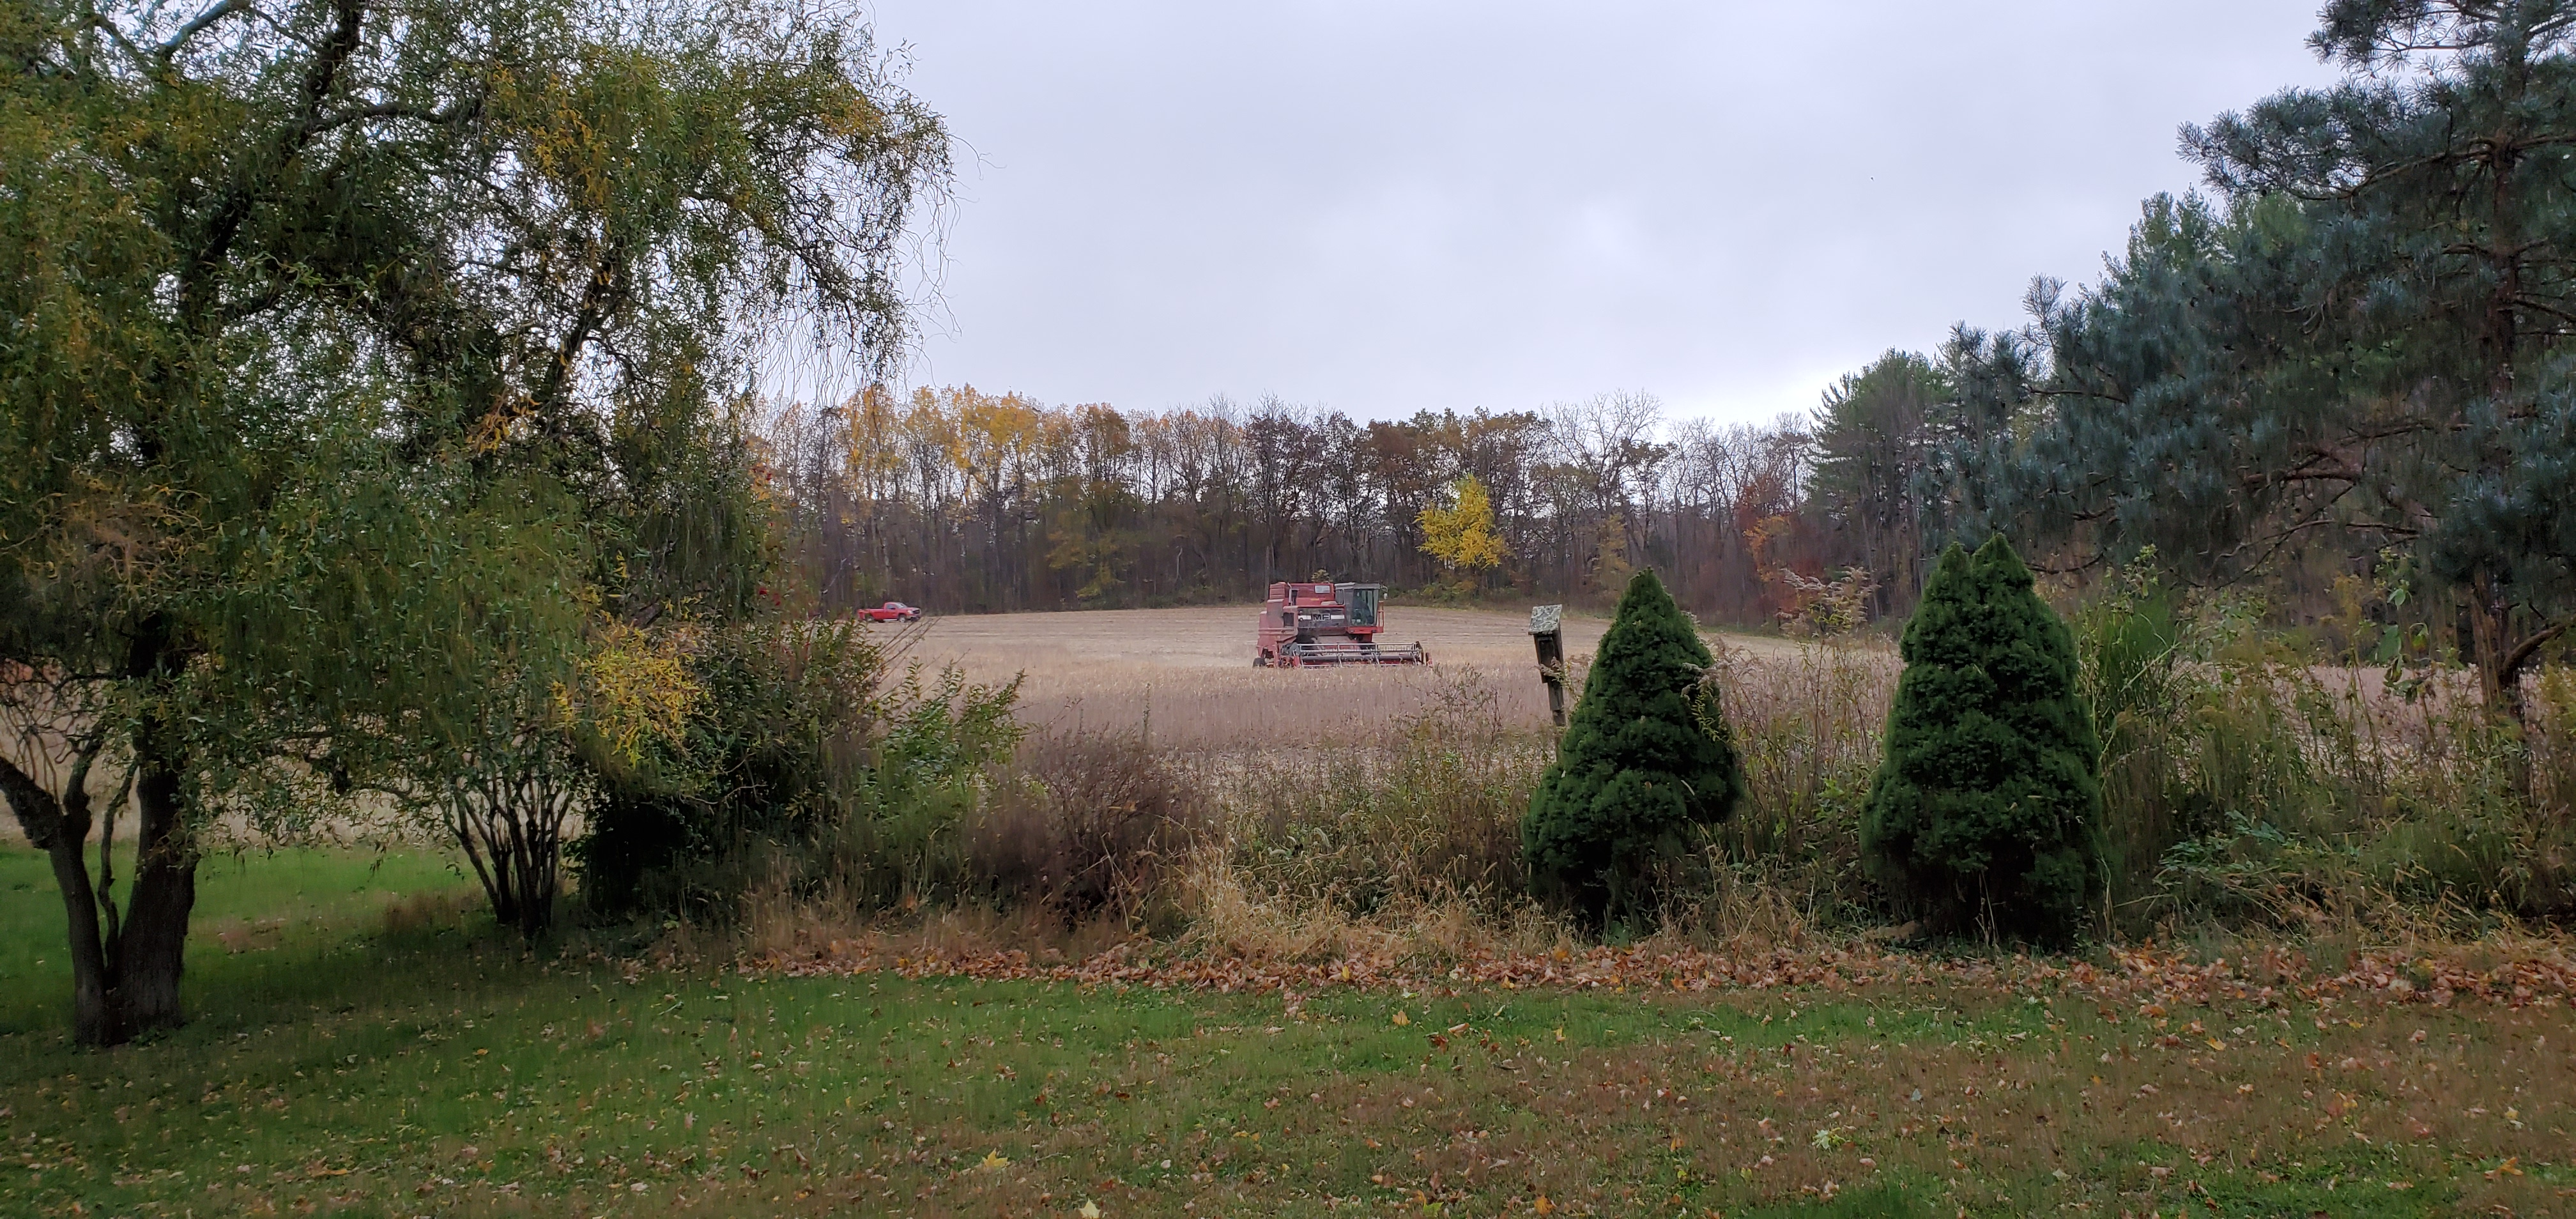 the field being harvested